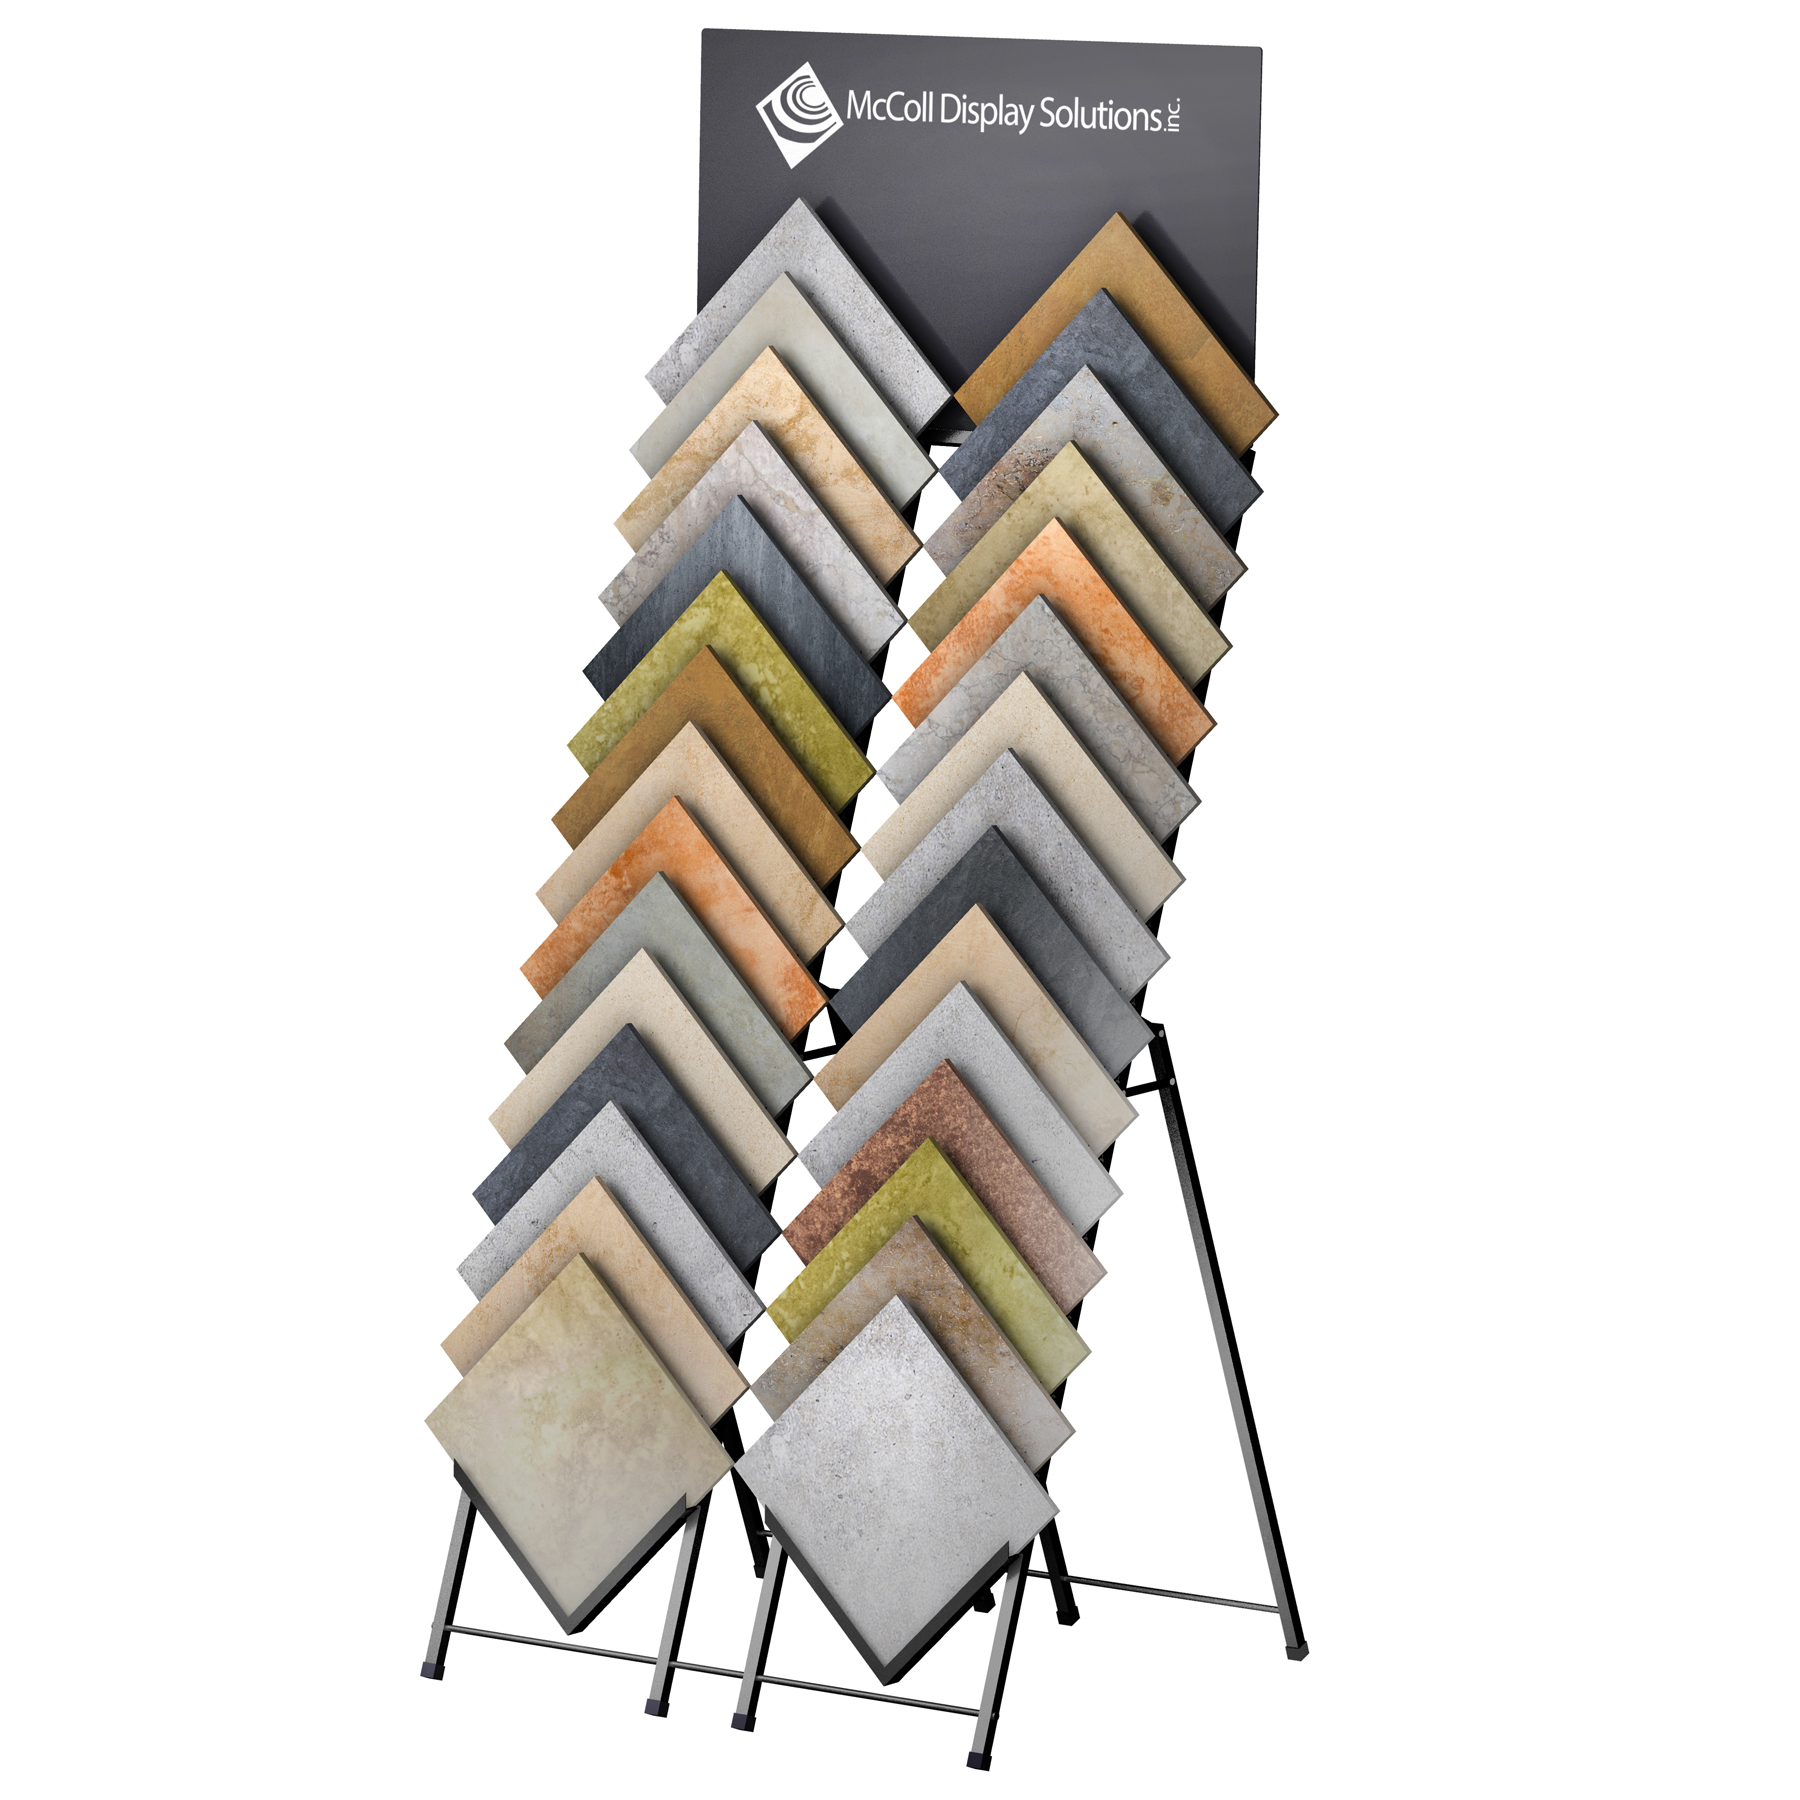 D30 Easel A-Frame Tower Optional Screen Printed Signage Double Front Load Ceramic Tile Stone Marble Channel System Showroom Display